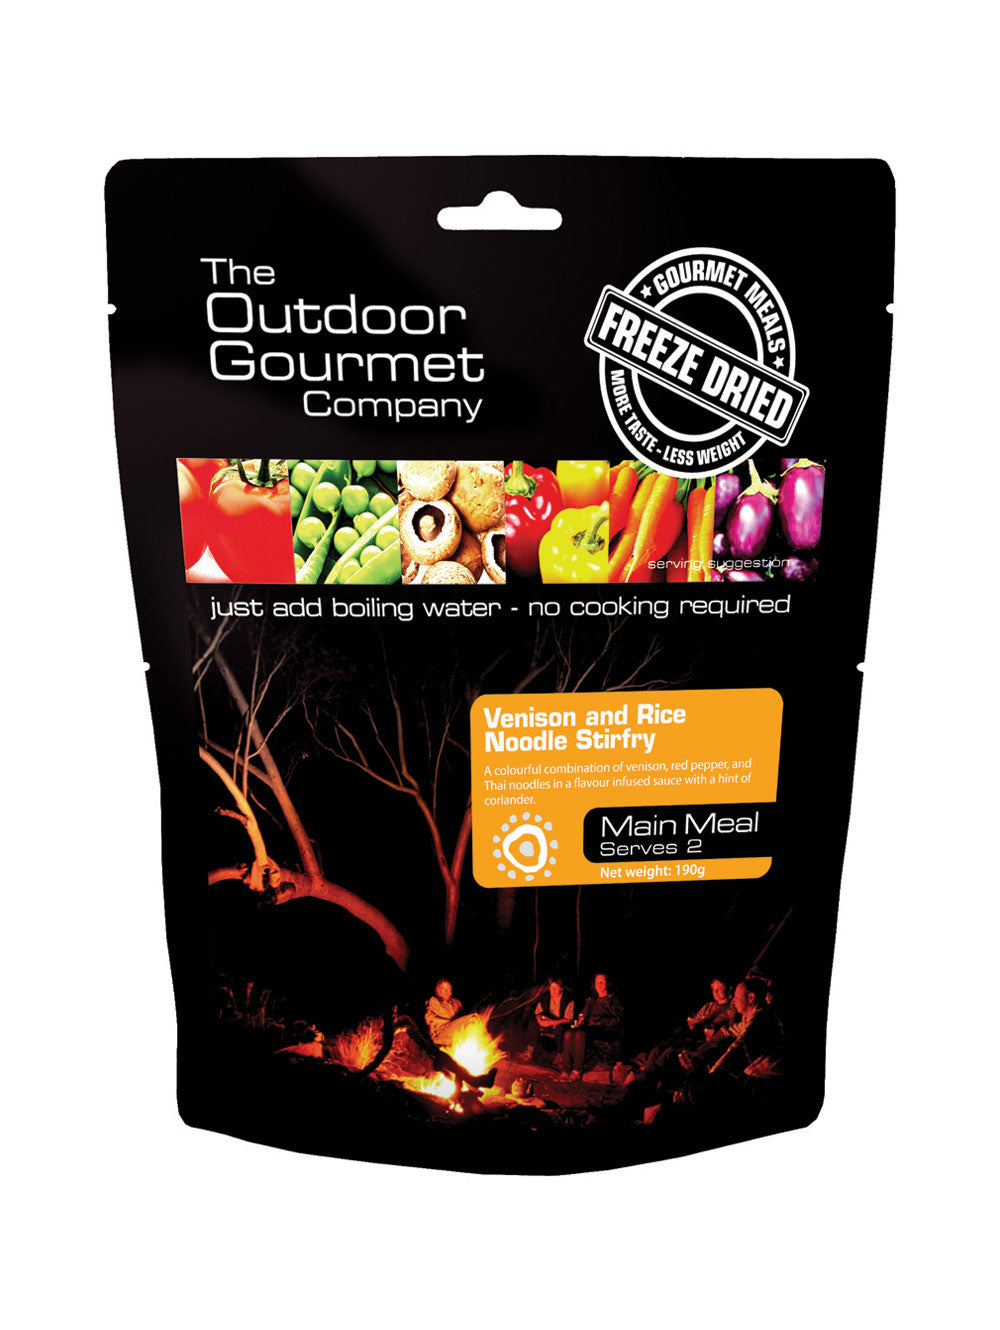 Outdoor Gourmet Venison and Rice Noodle Stir-fry Freeze-dried Meal - Serves 2